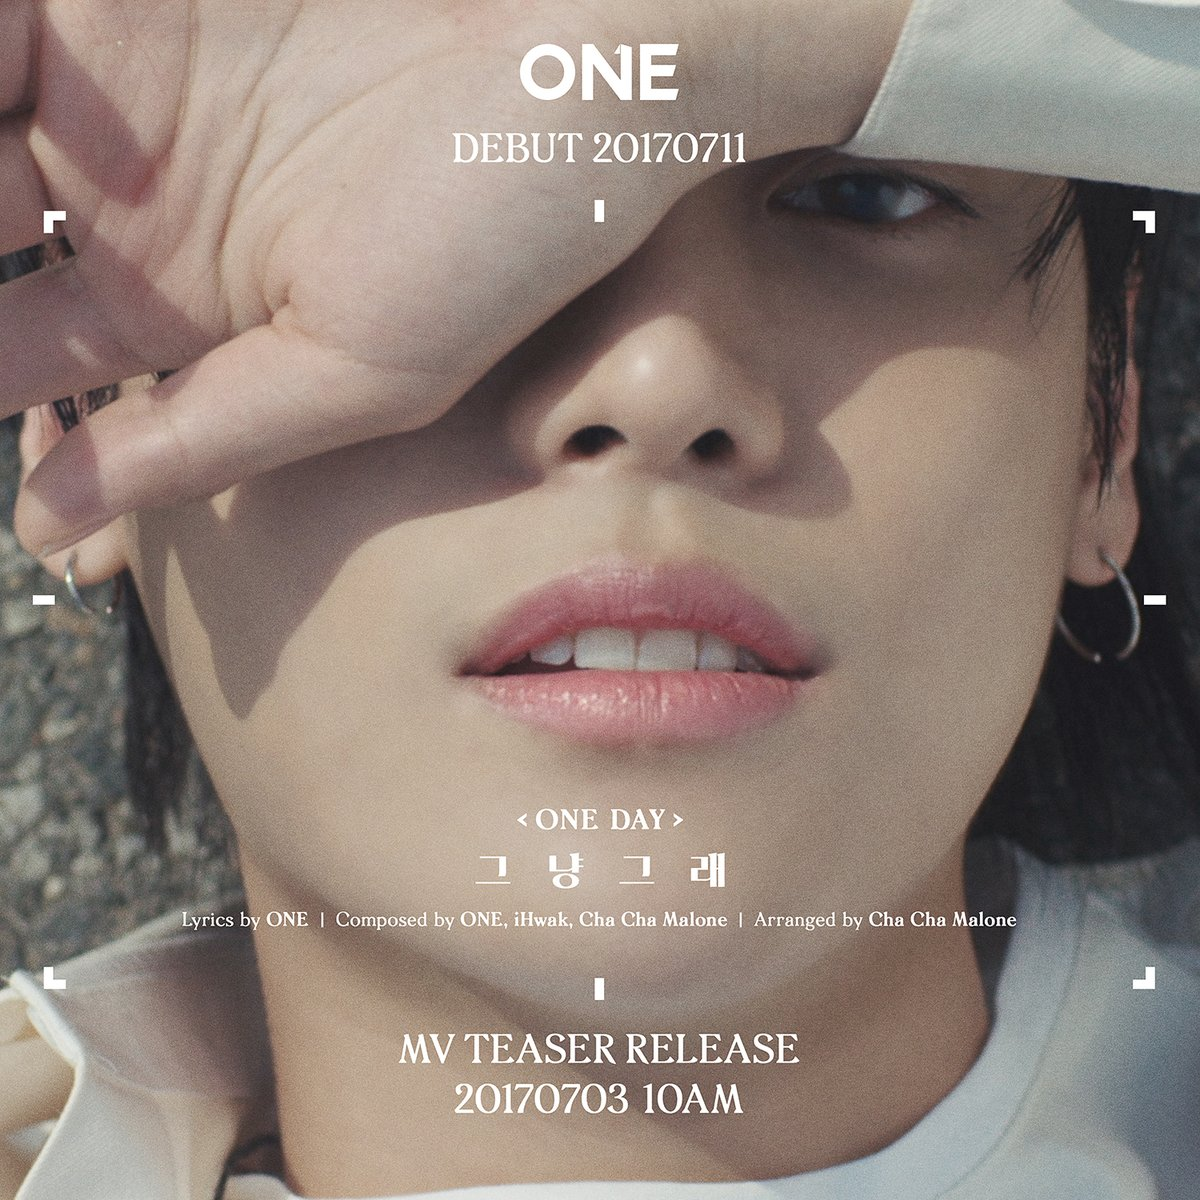 Update: YG Rapper ONE Announces Release Date Of First MV Teaser In New Teaser Image